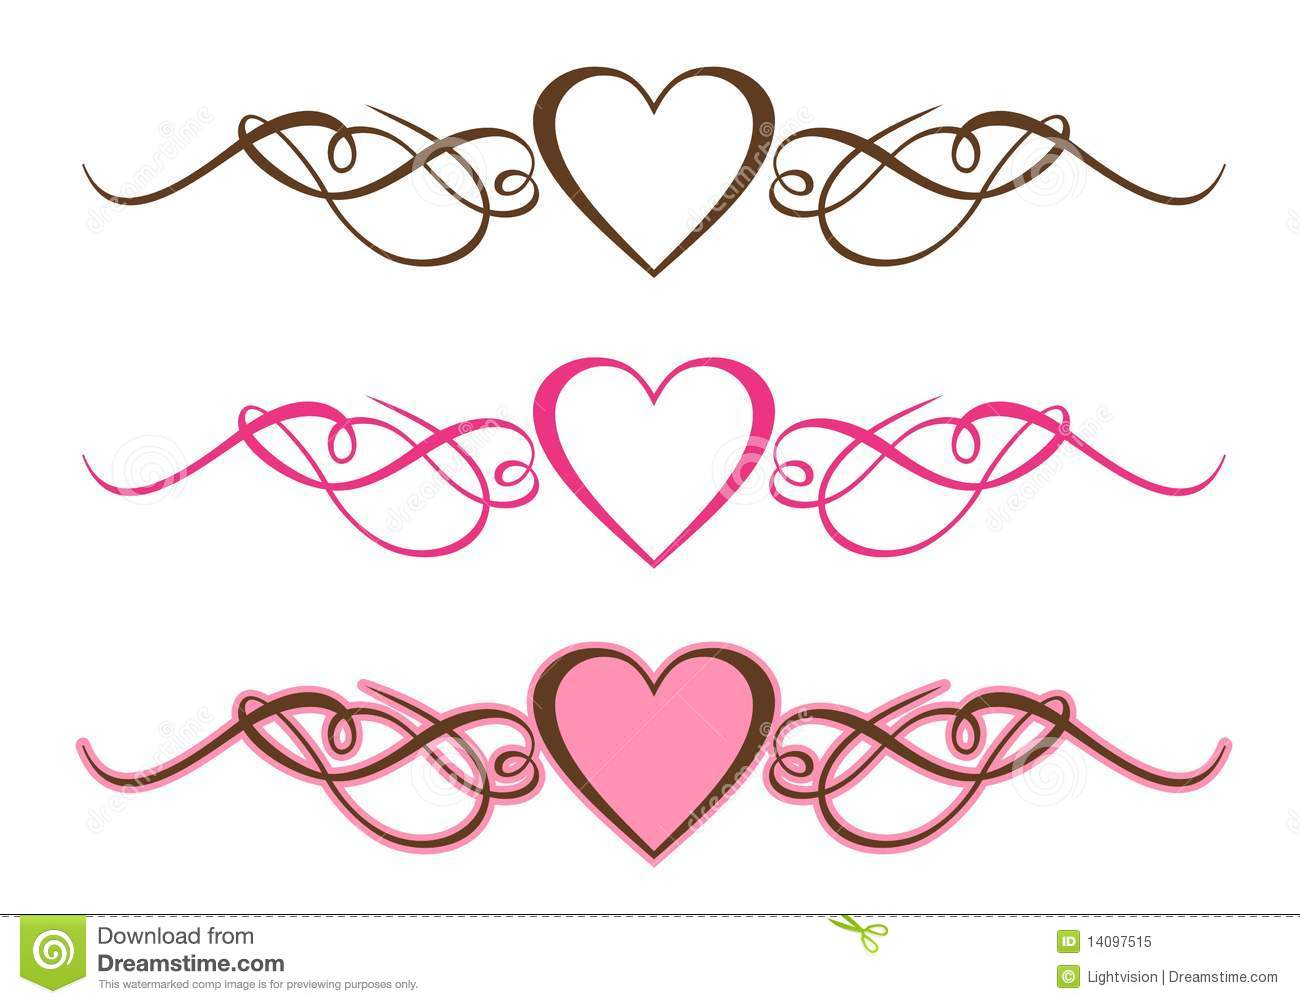 Free Scrollwork Heart Cliparts, Download Free Clip Art, Free.